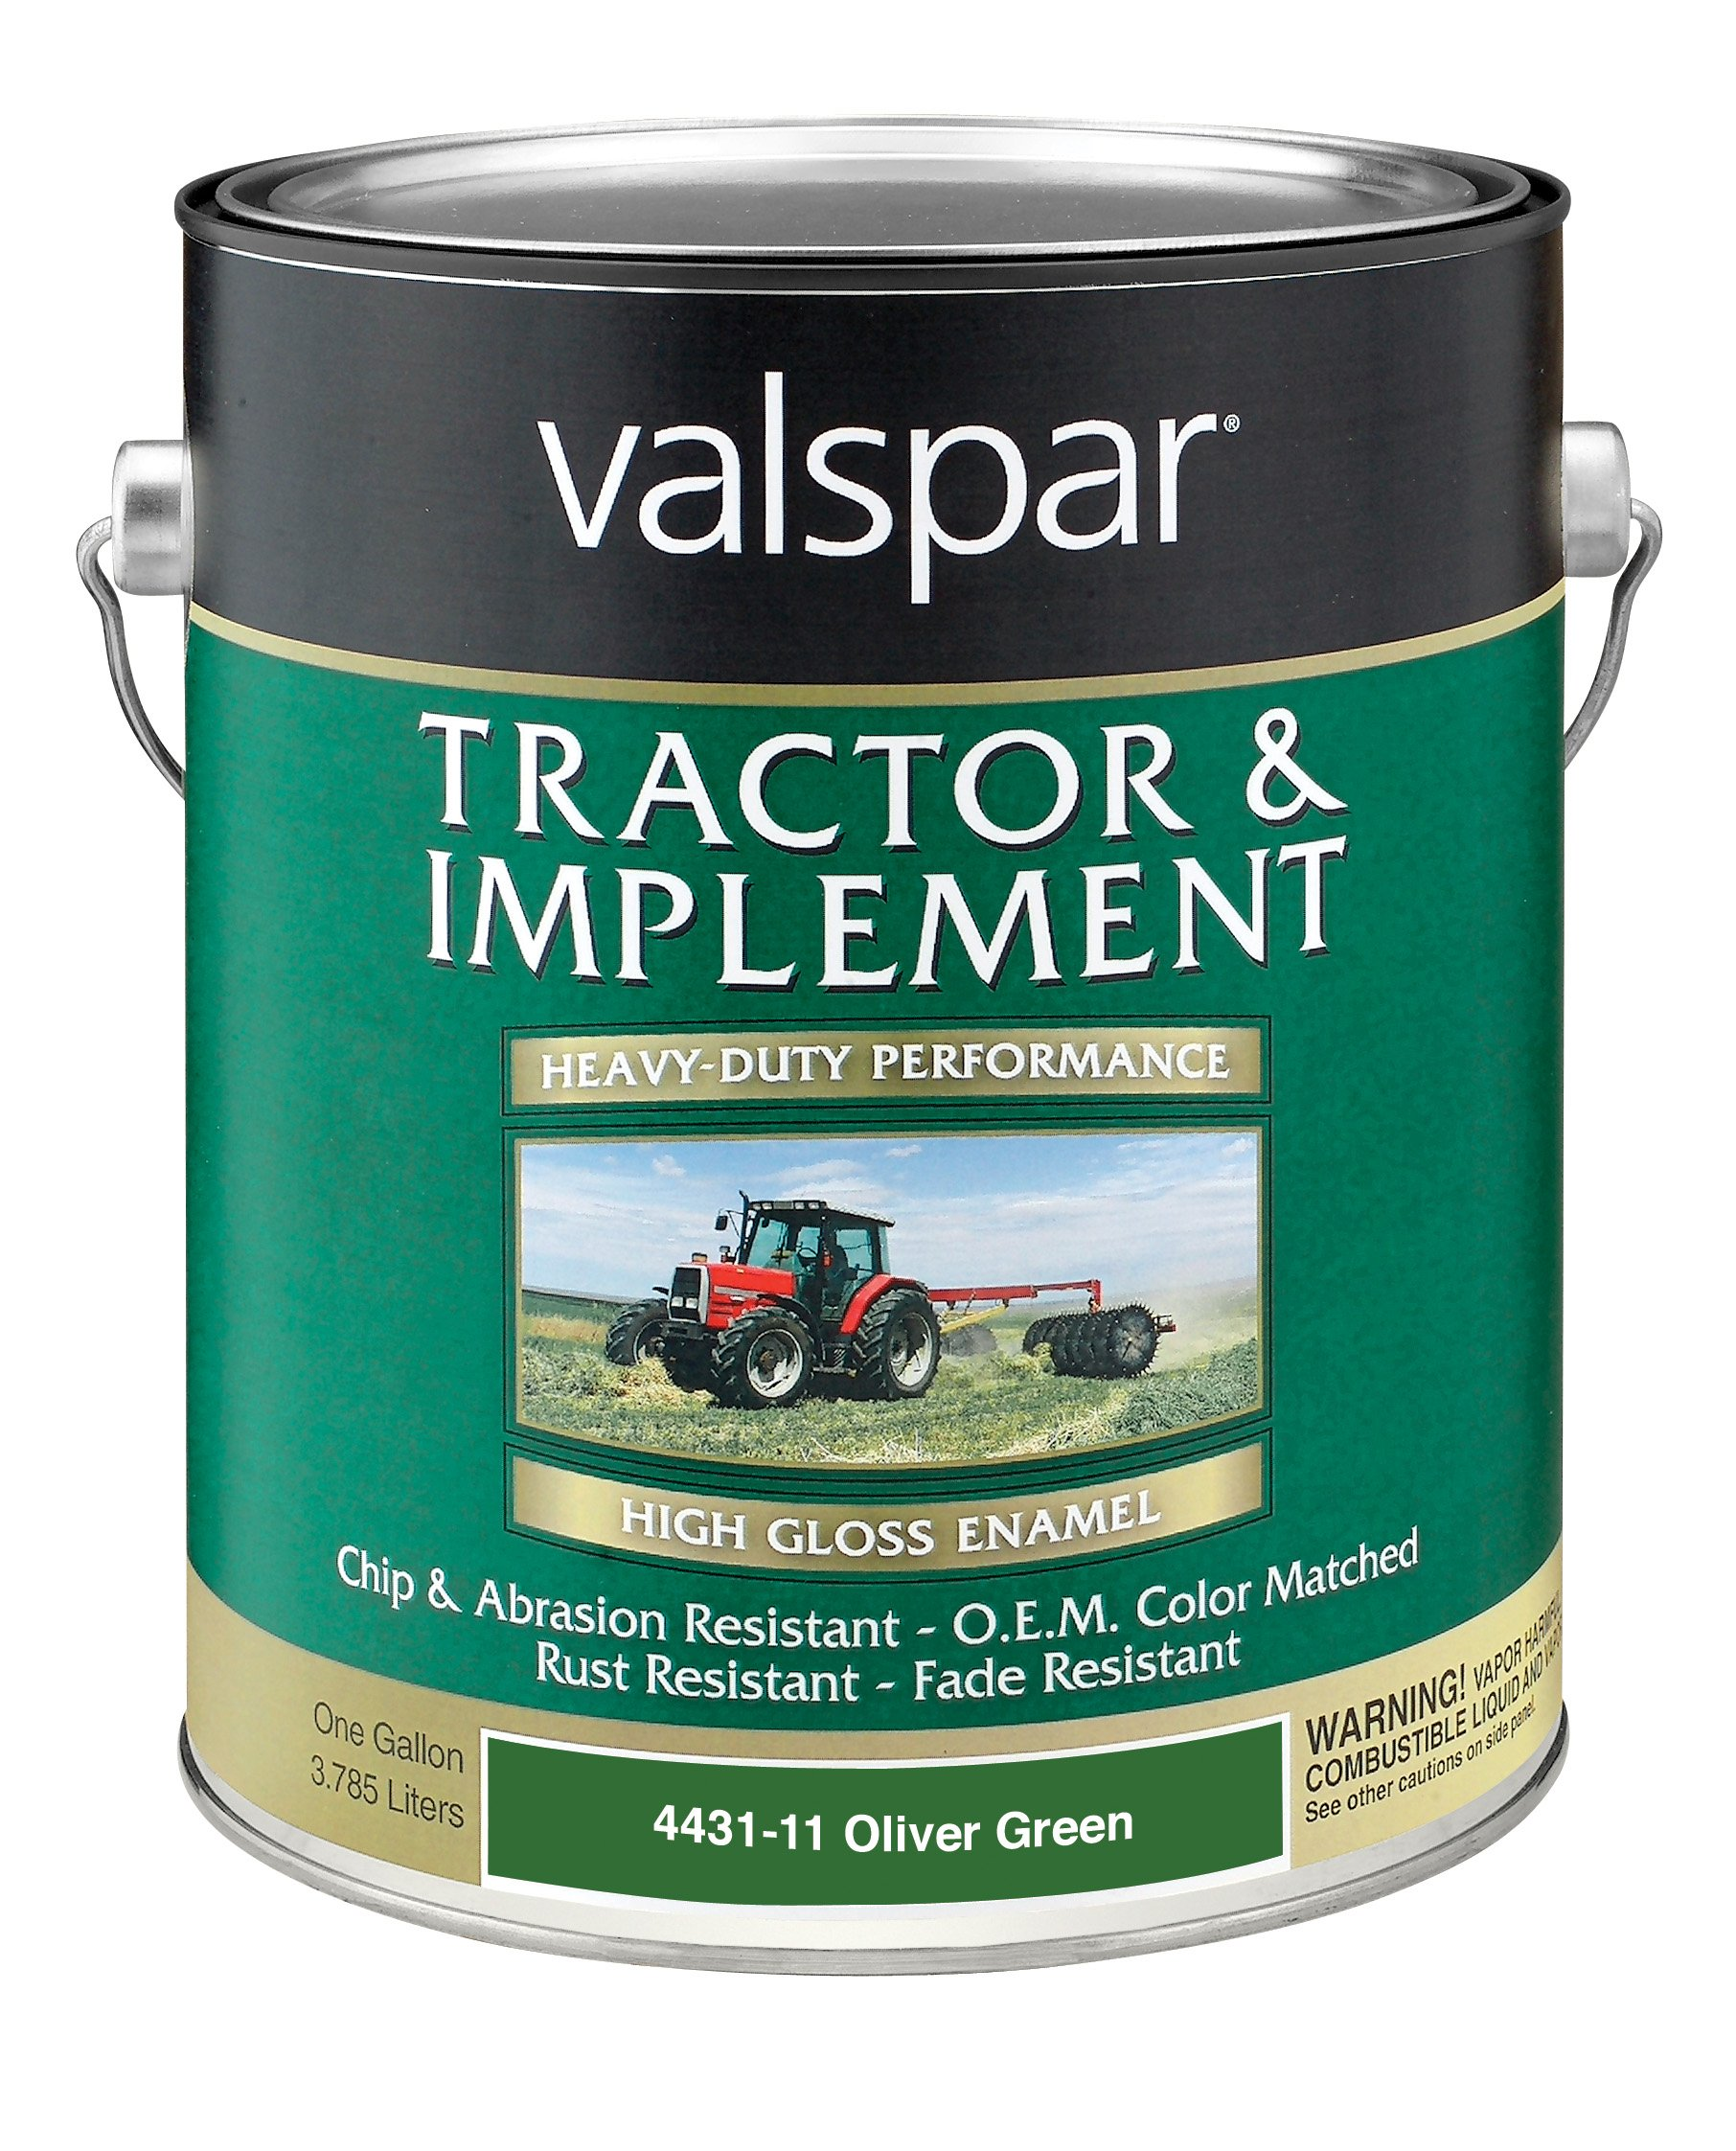 Valspar 4431-11 Oliver Green Tractor and Implement Paint - 1 Gallon by Valspar